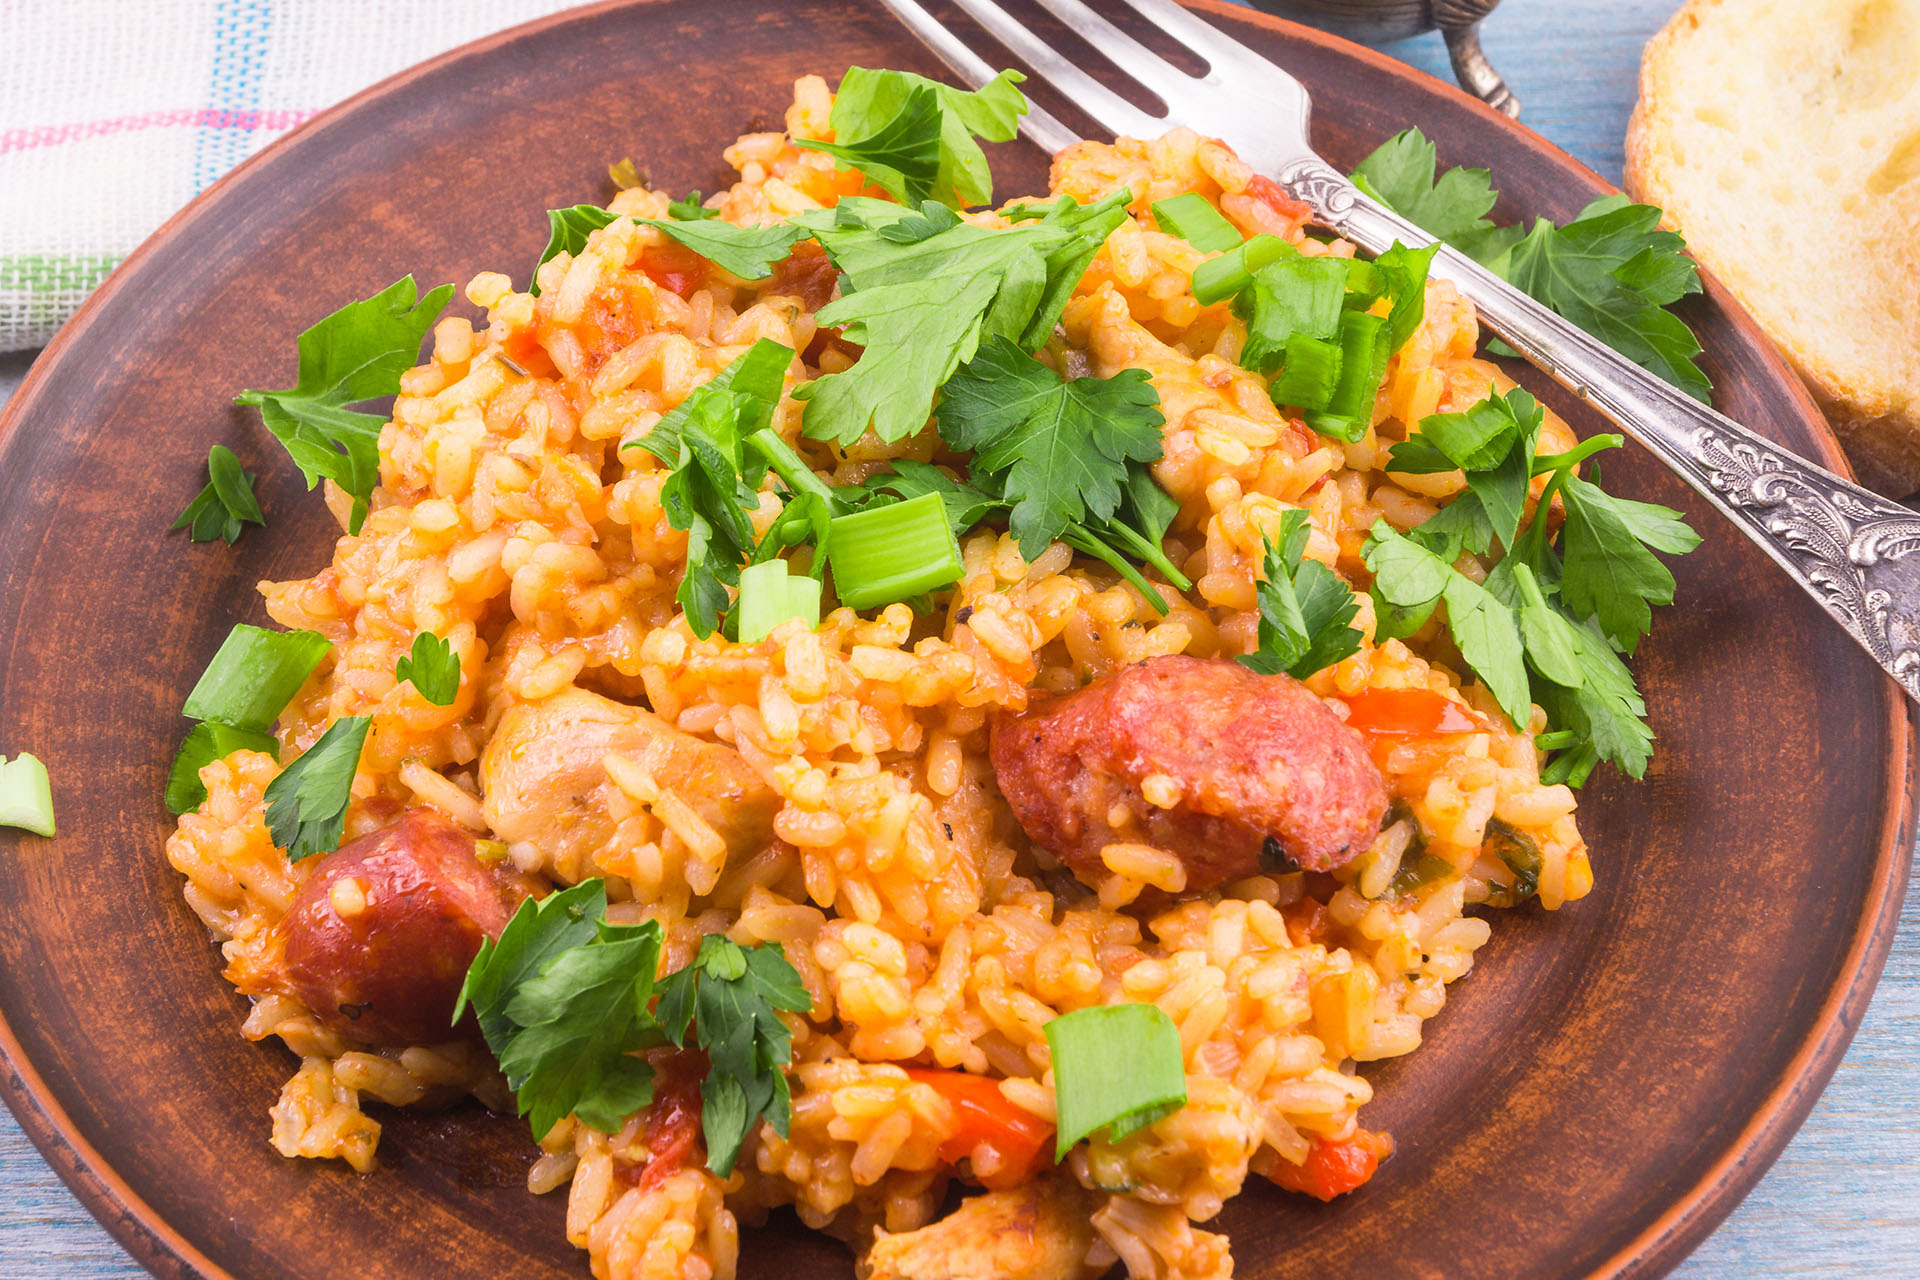 Traditional American New Orleans Jumbalaya with rice, chicken and sausages, on a clay plate, sprinkled with chopped parsley, closeup, top view.